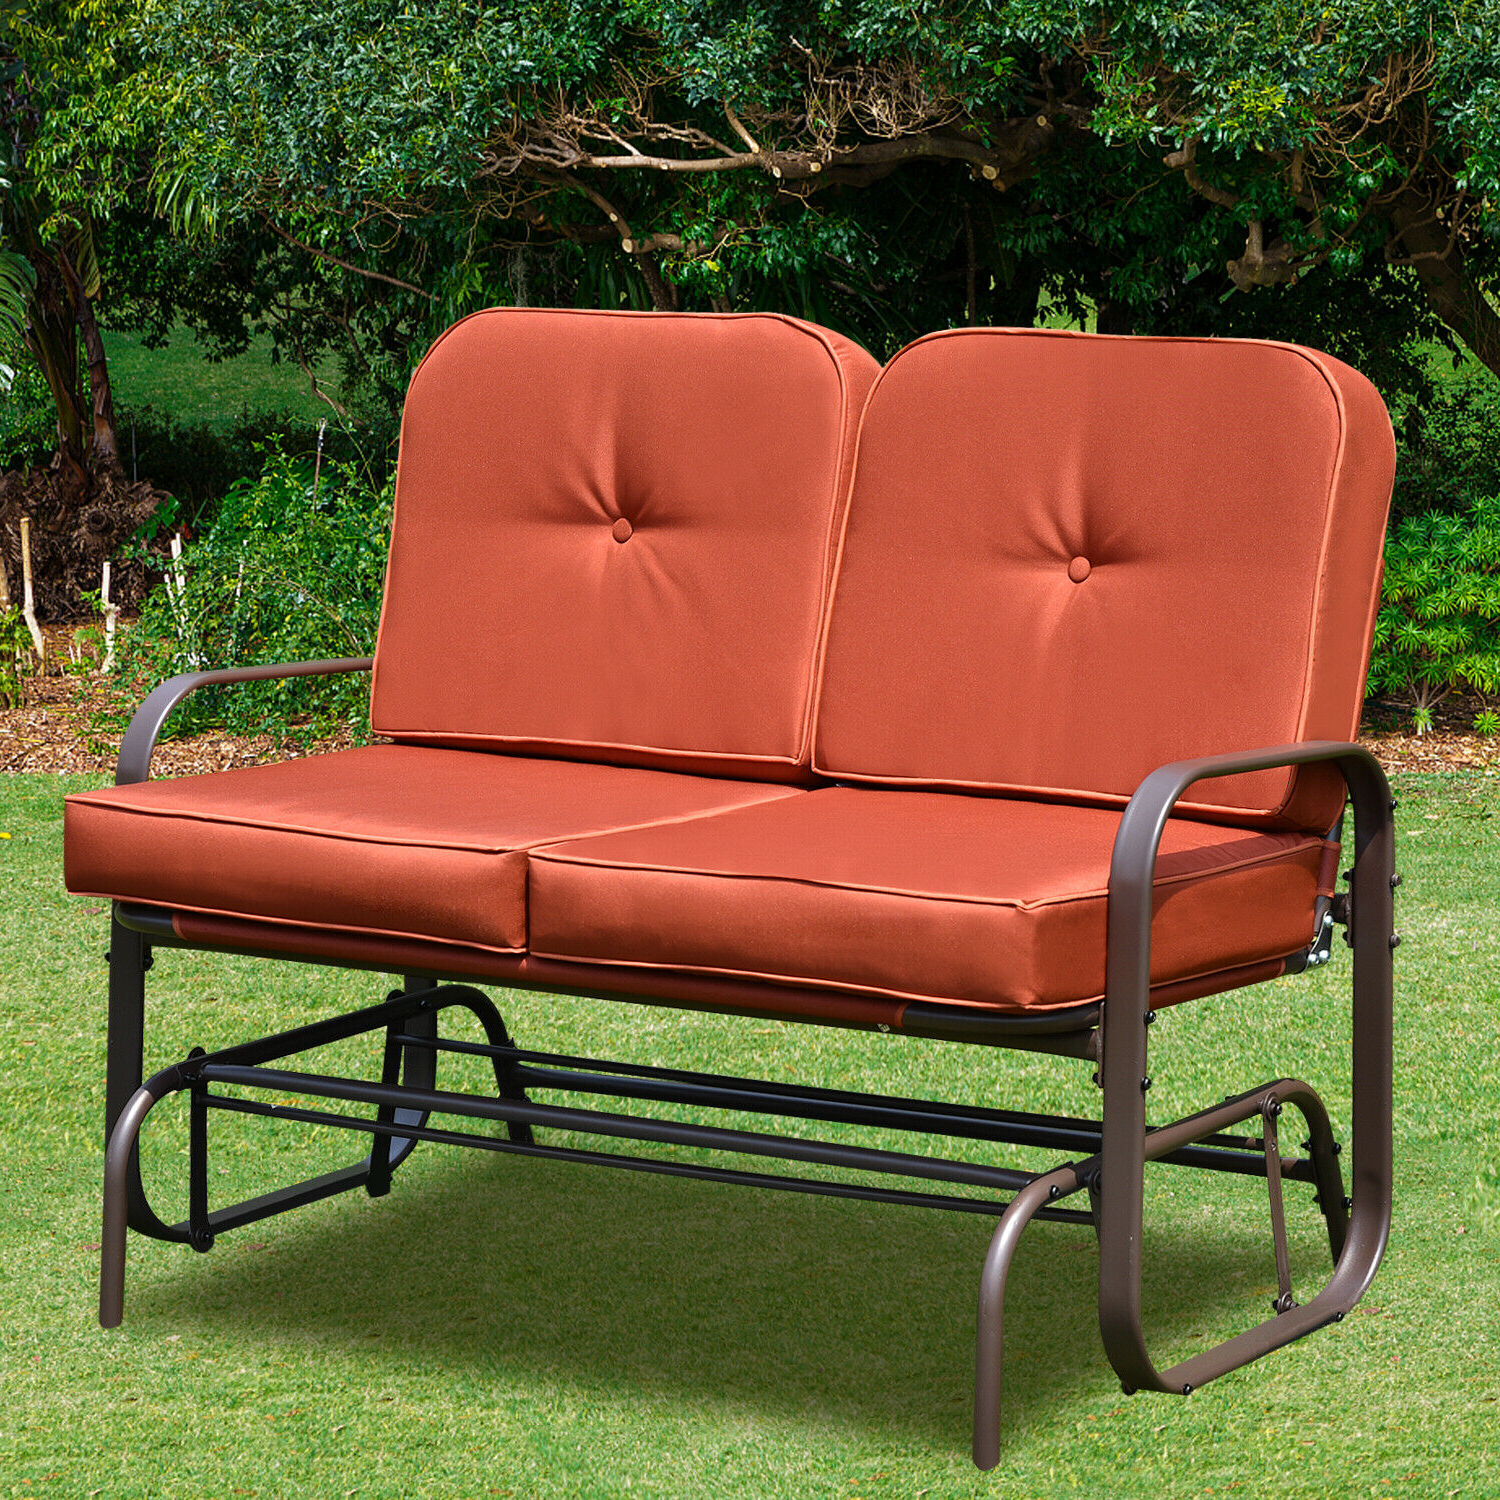 Double Glider Benches With Cushion Throughout Well Known Patio Glider Bench Chair 2 Person Rocker Loveseat Outdoor Furniture W/ Cushions (Gallery 15 of 30)